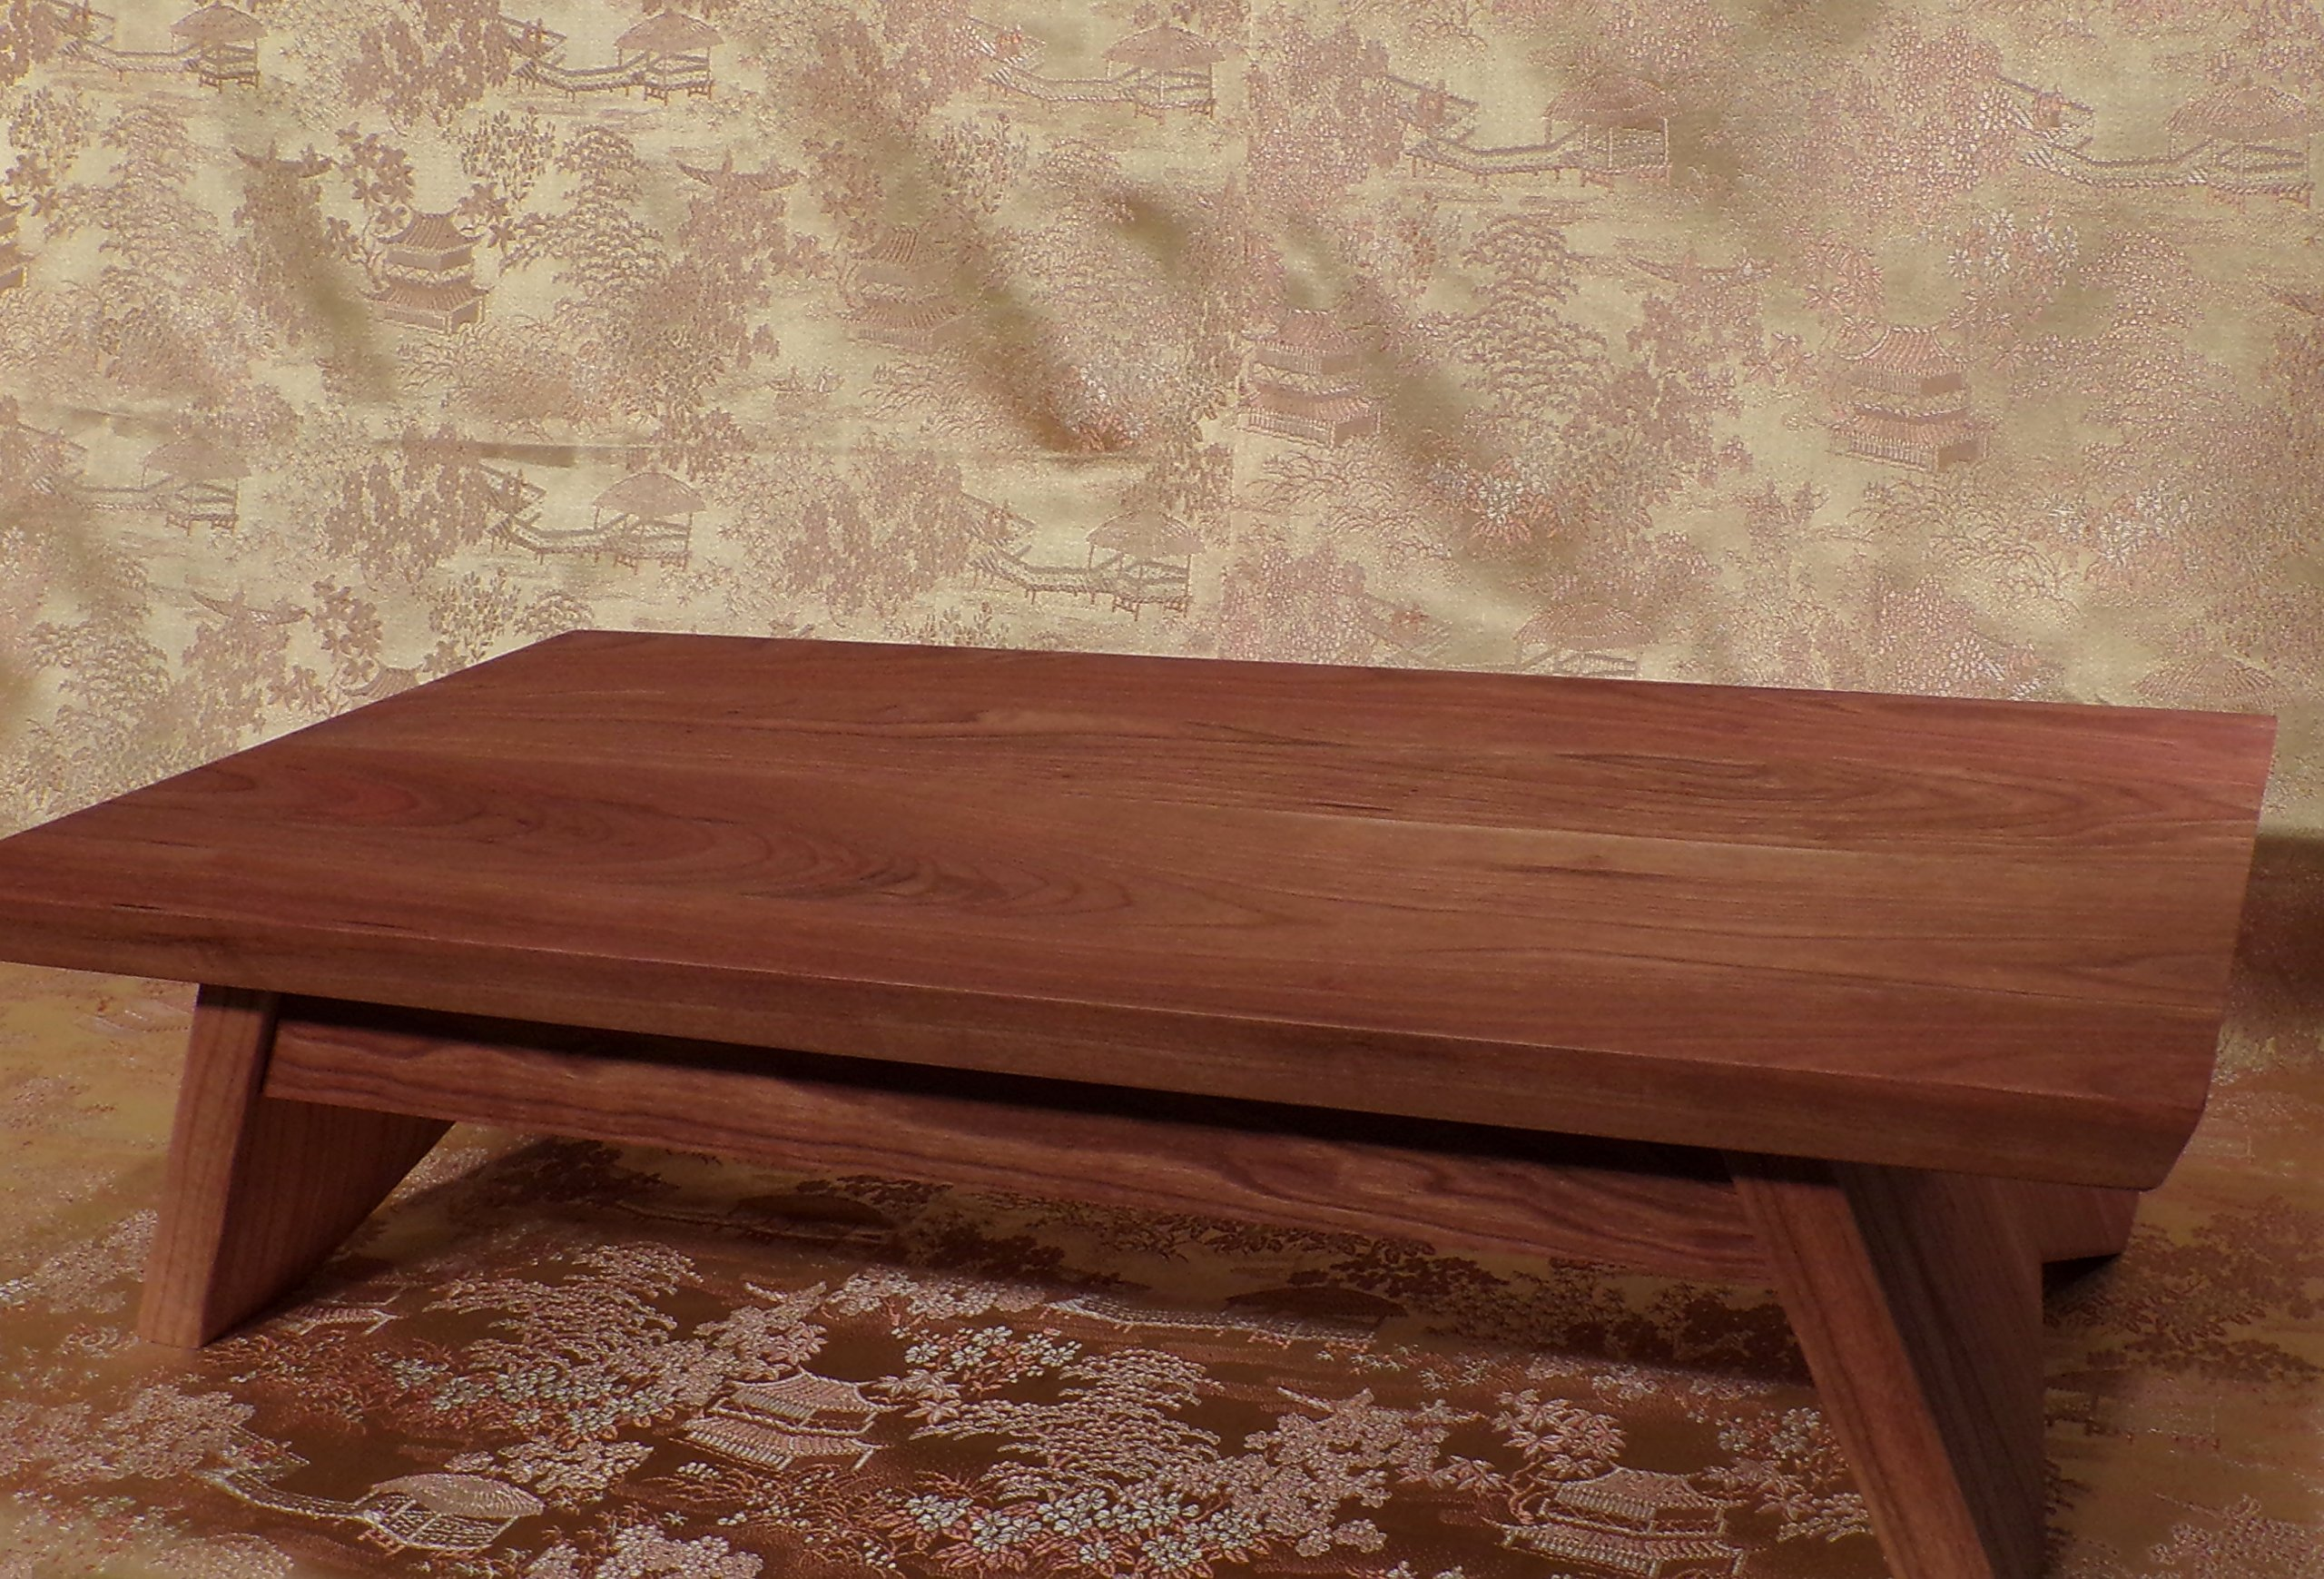 EarthBench Shrine Table - Petite Floor Altar (5'' inches tall) - Solid NORTHERN CHERRY Construction for Meditation, Prayer, or Contemplative Studies.